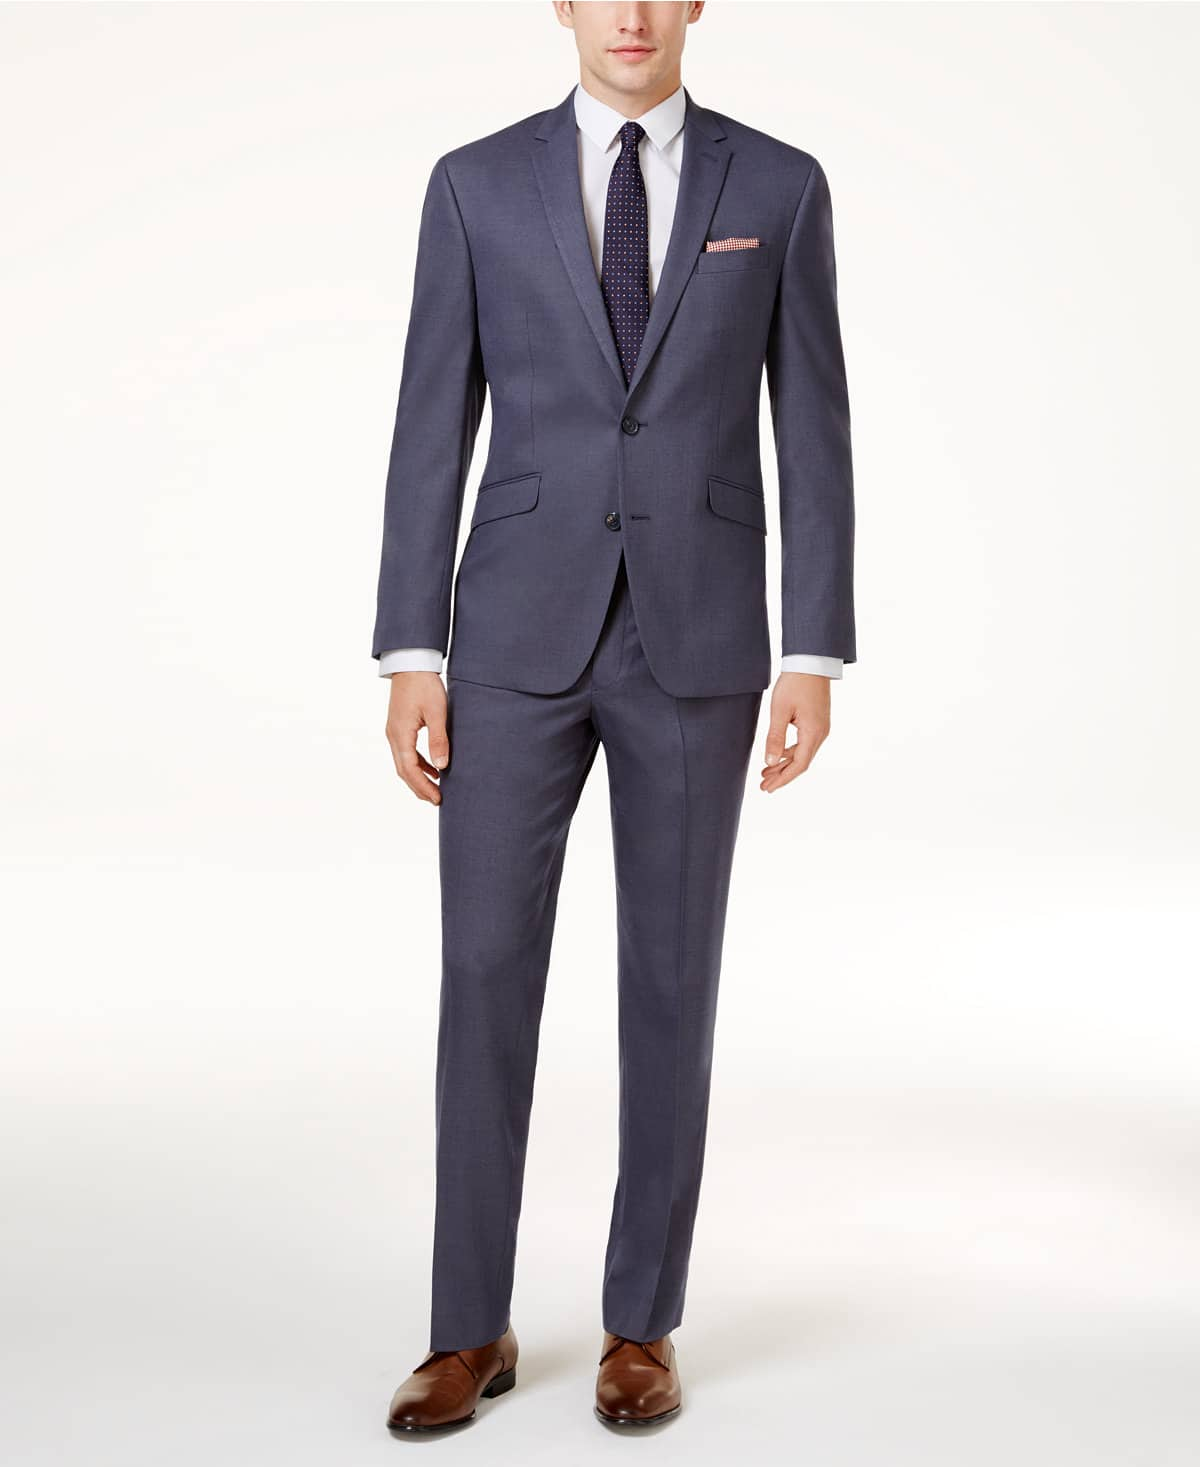 Early Black Friday deal: Kenneth Cole Reaction Men's Suits - $99.99 + Free S/H